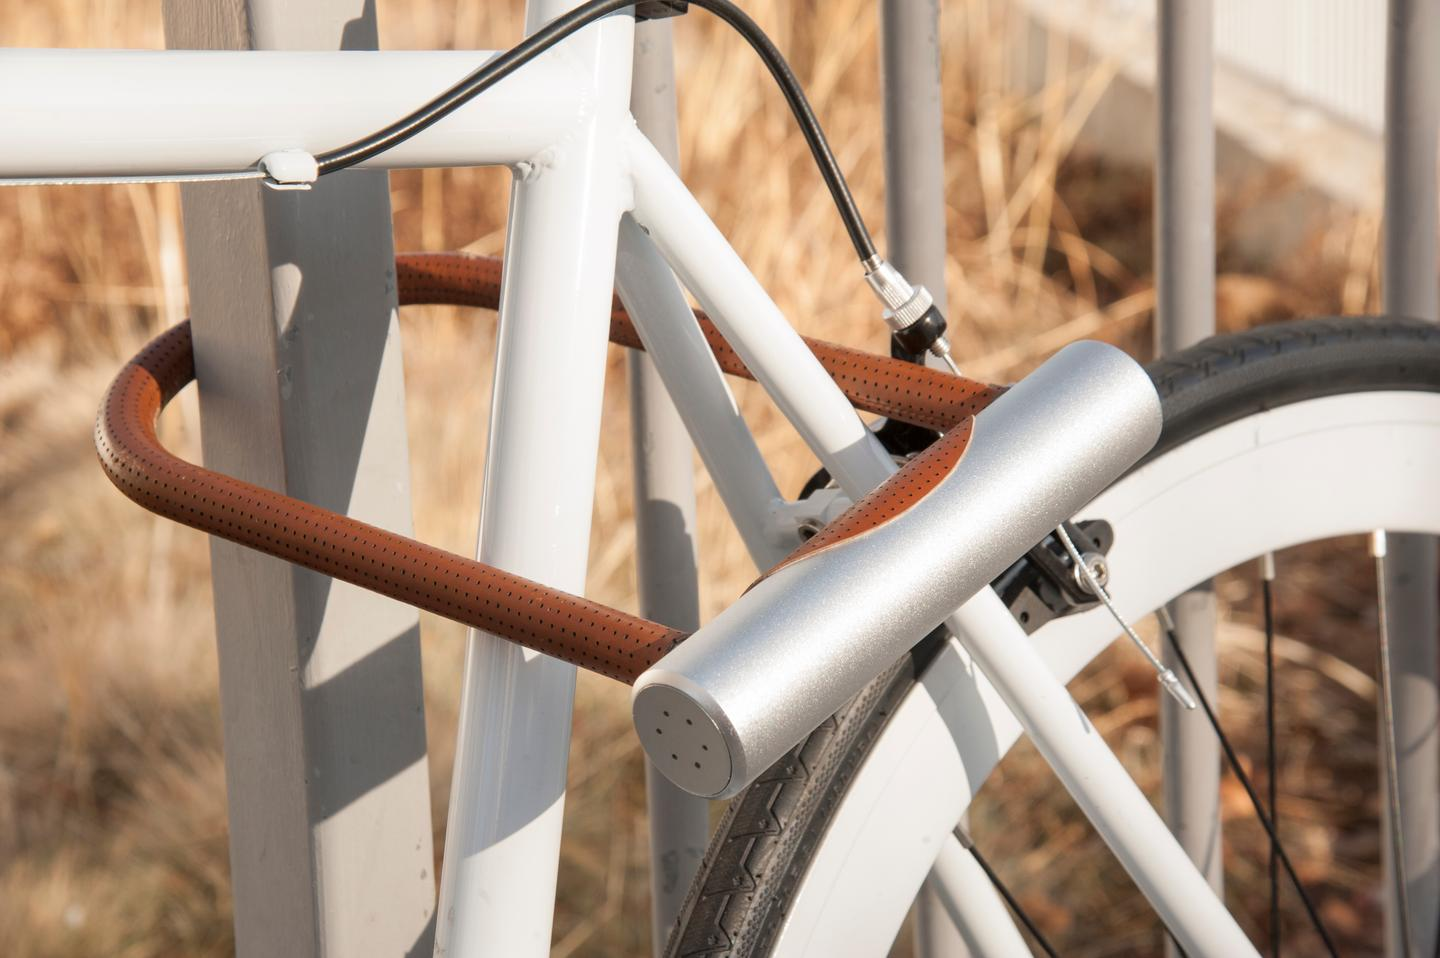 The Noke U-Lock only unlocks if the user's smartphone is within Bluetooth range